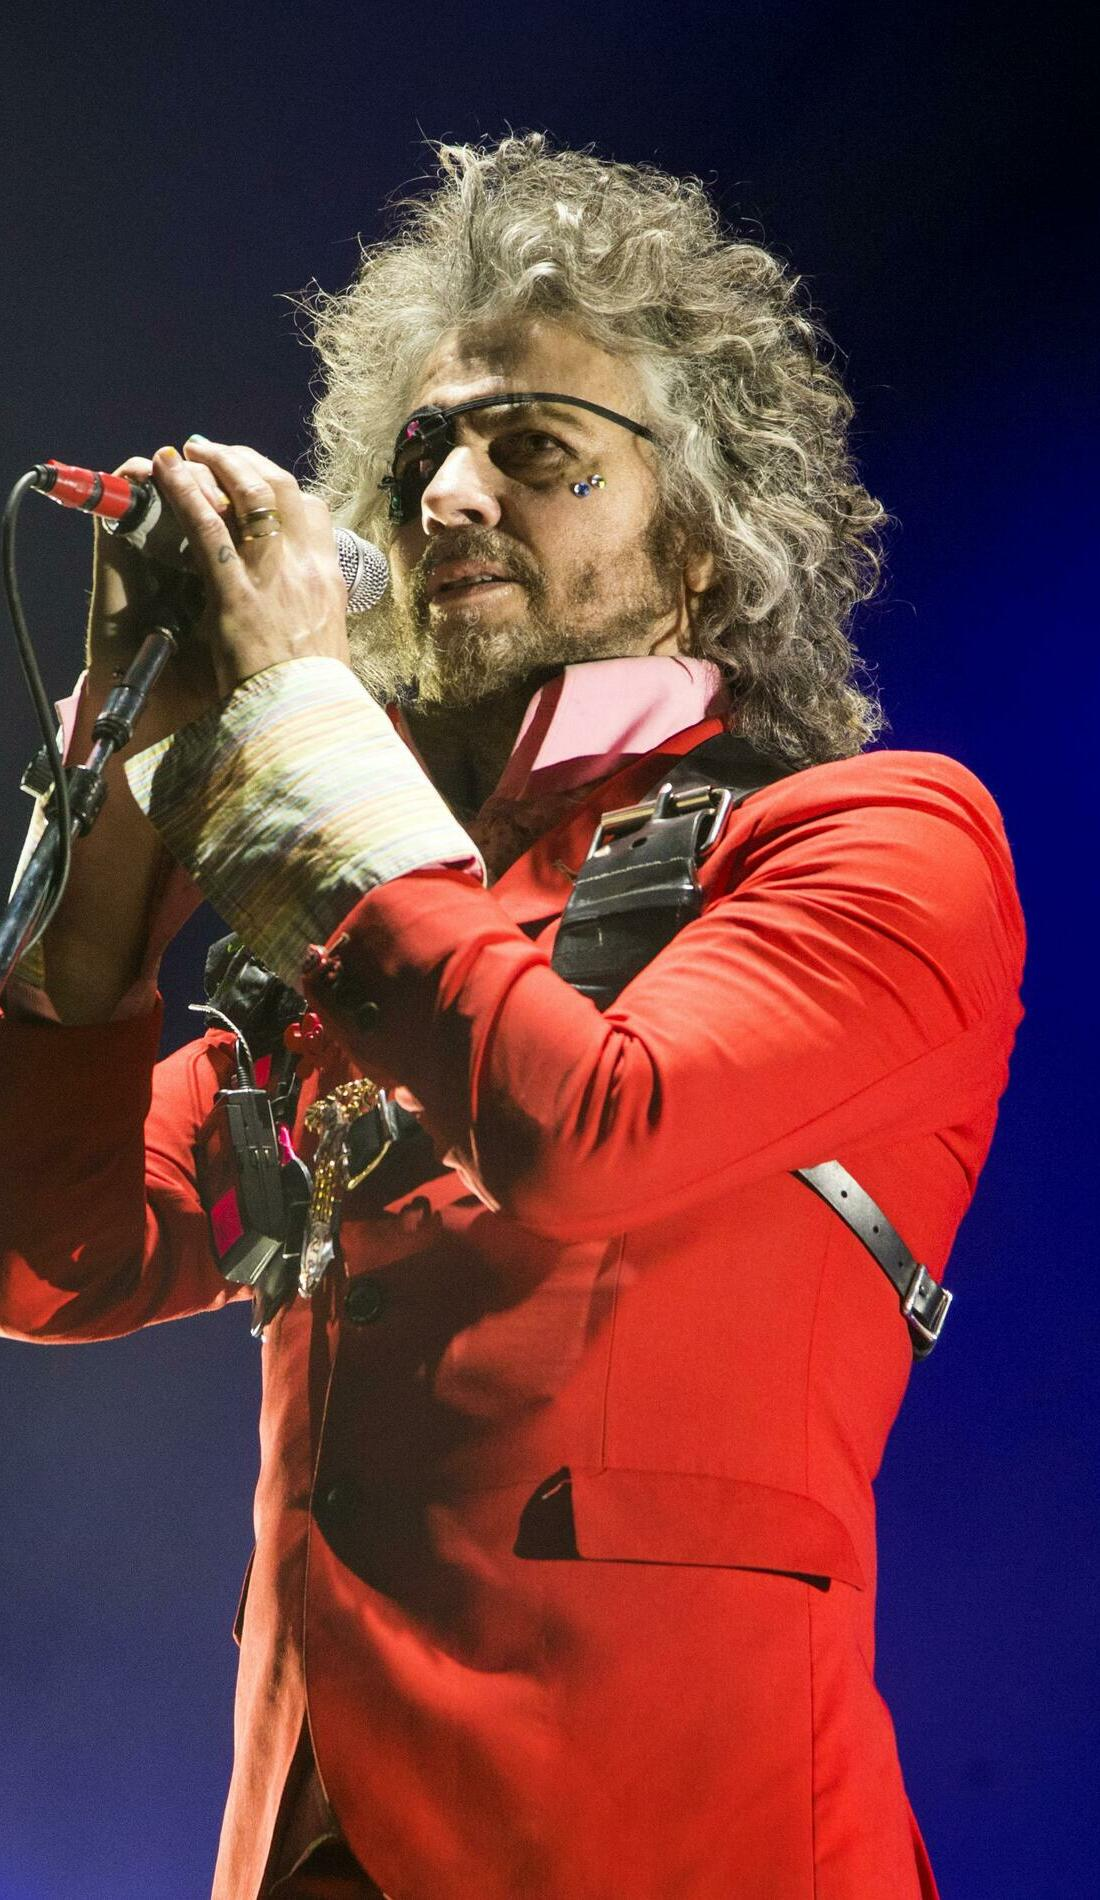 A The Flaming Lips live event